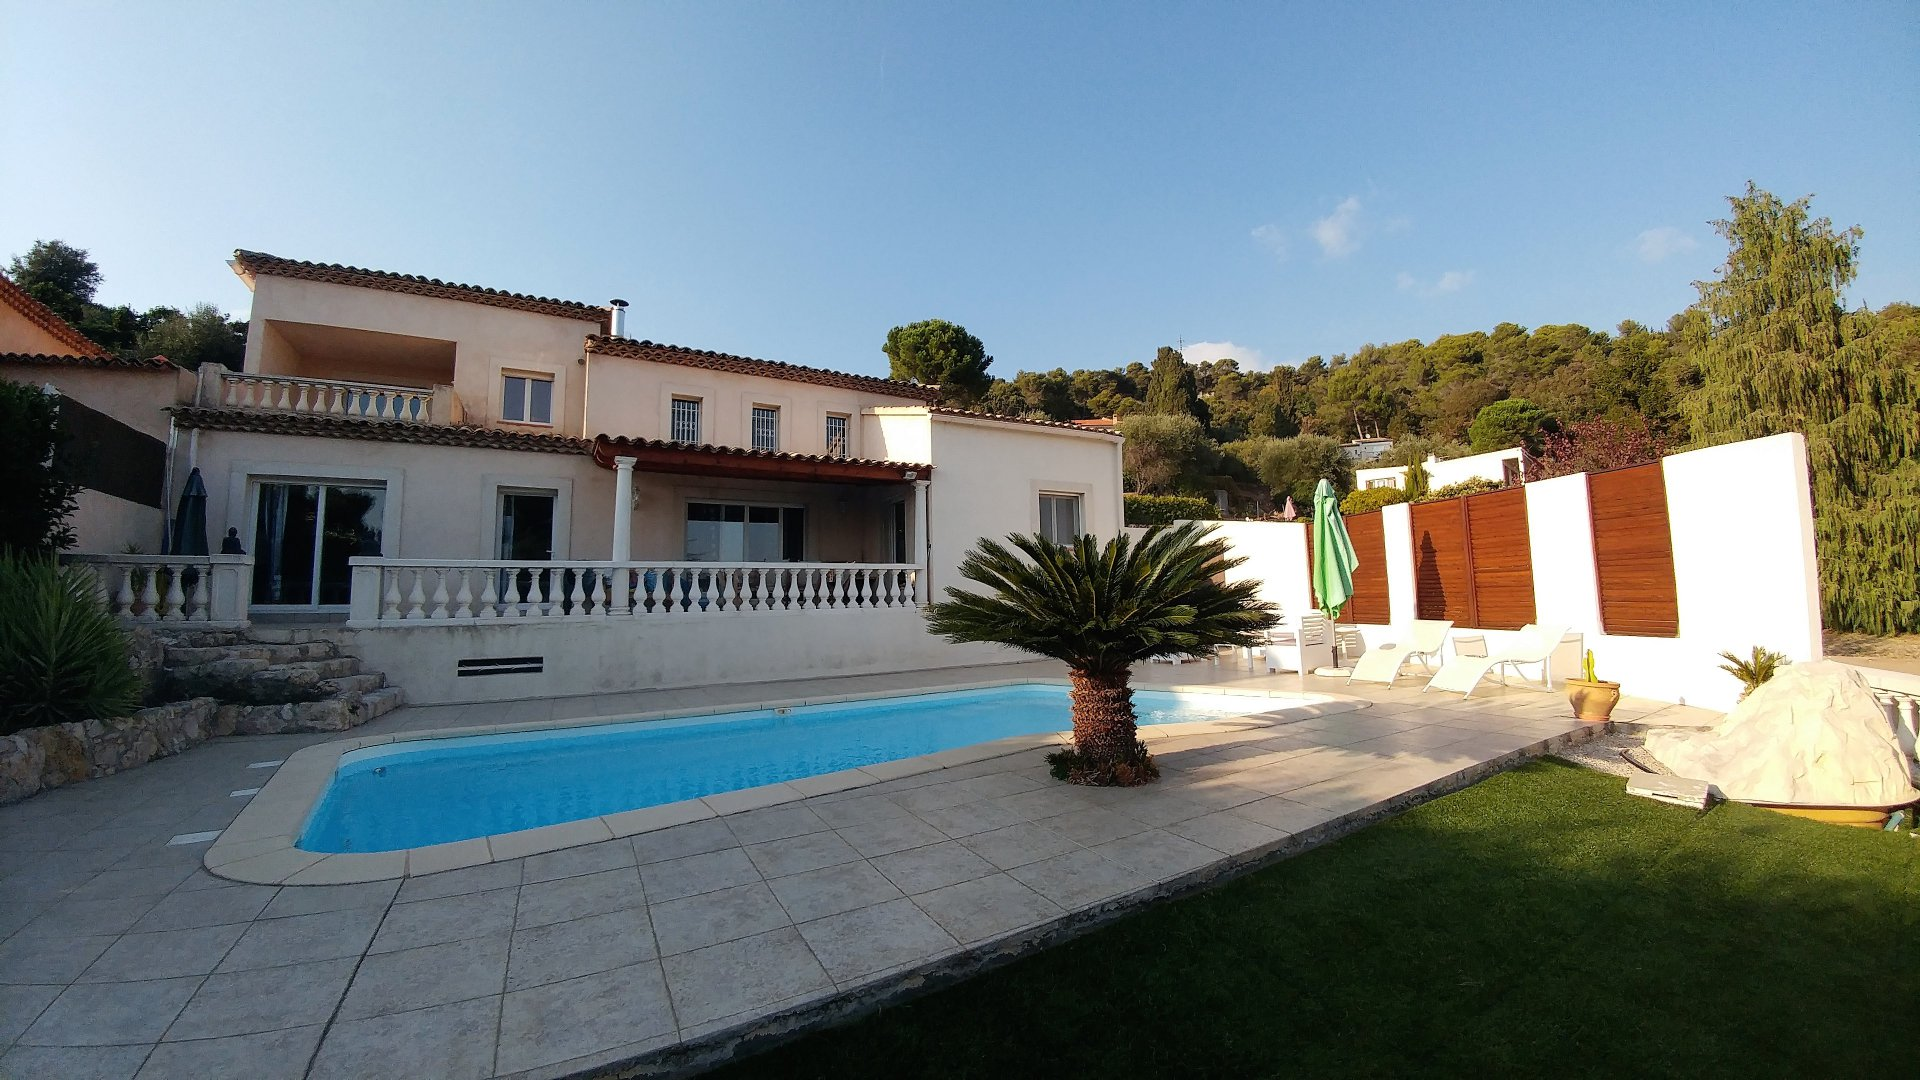 Seaview villa with pool in Nice Gairaut